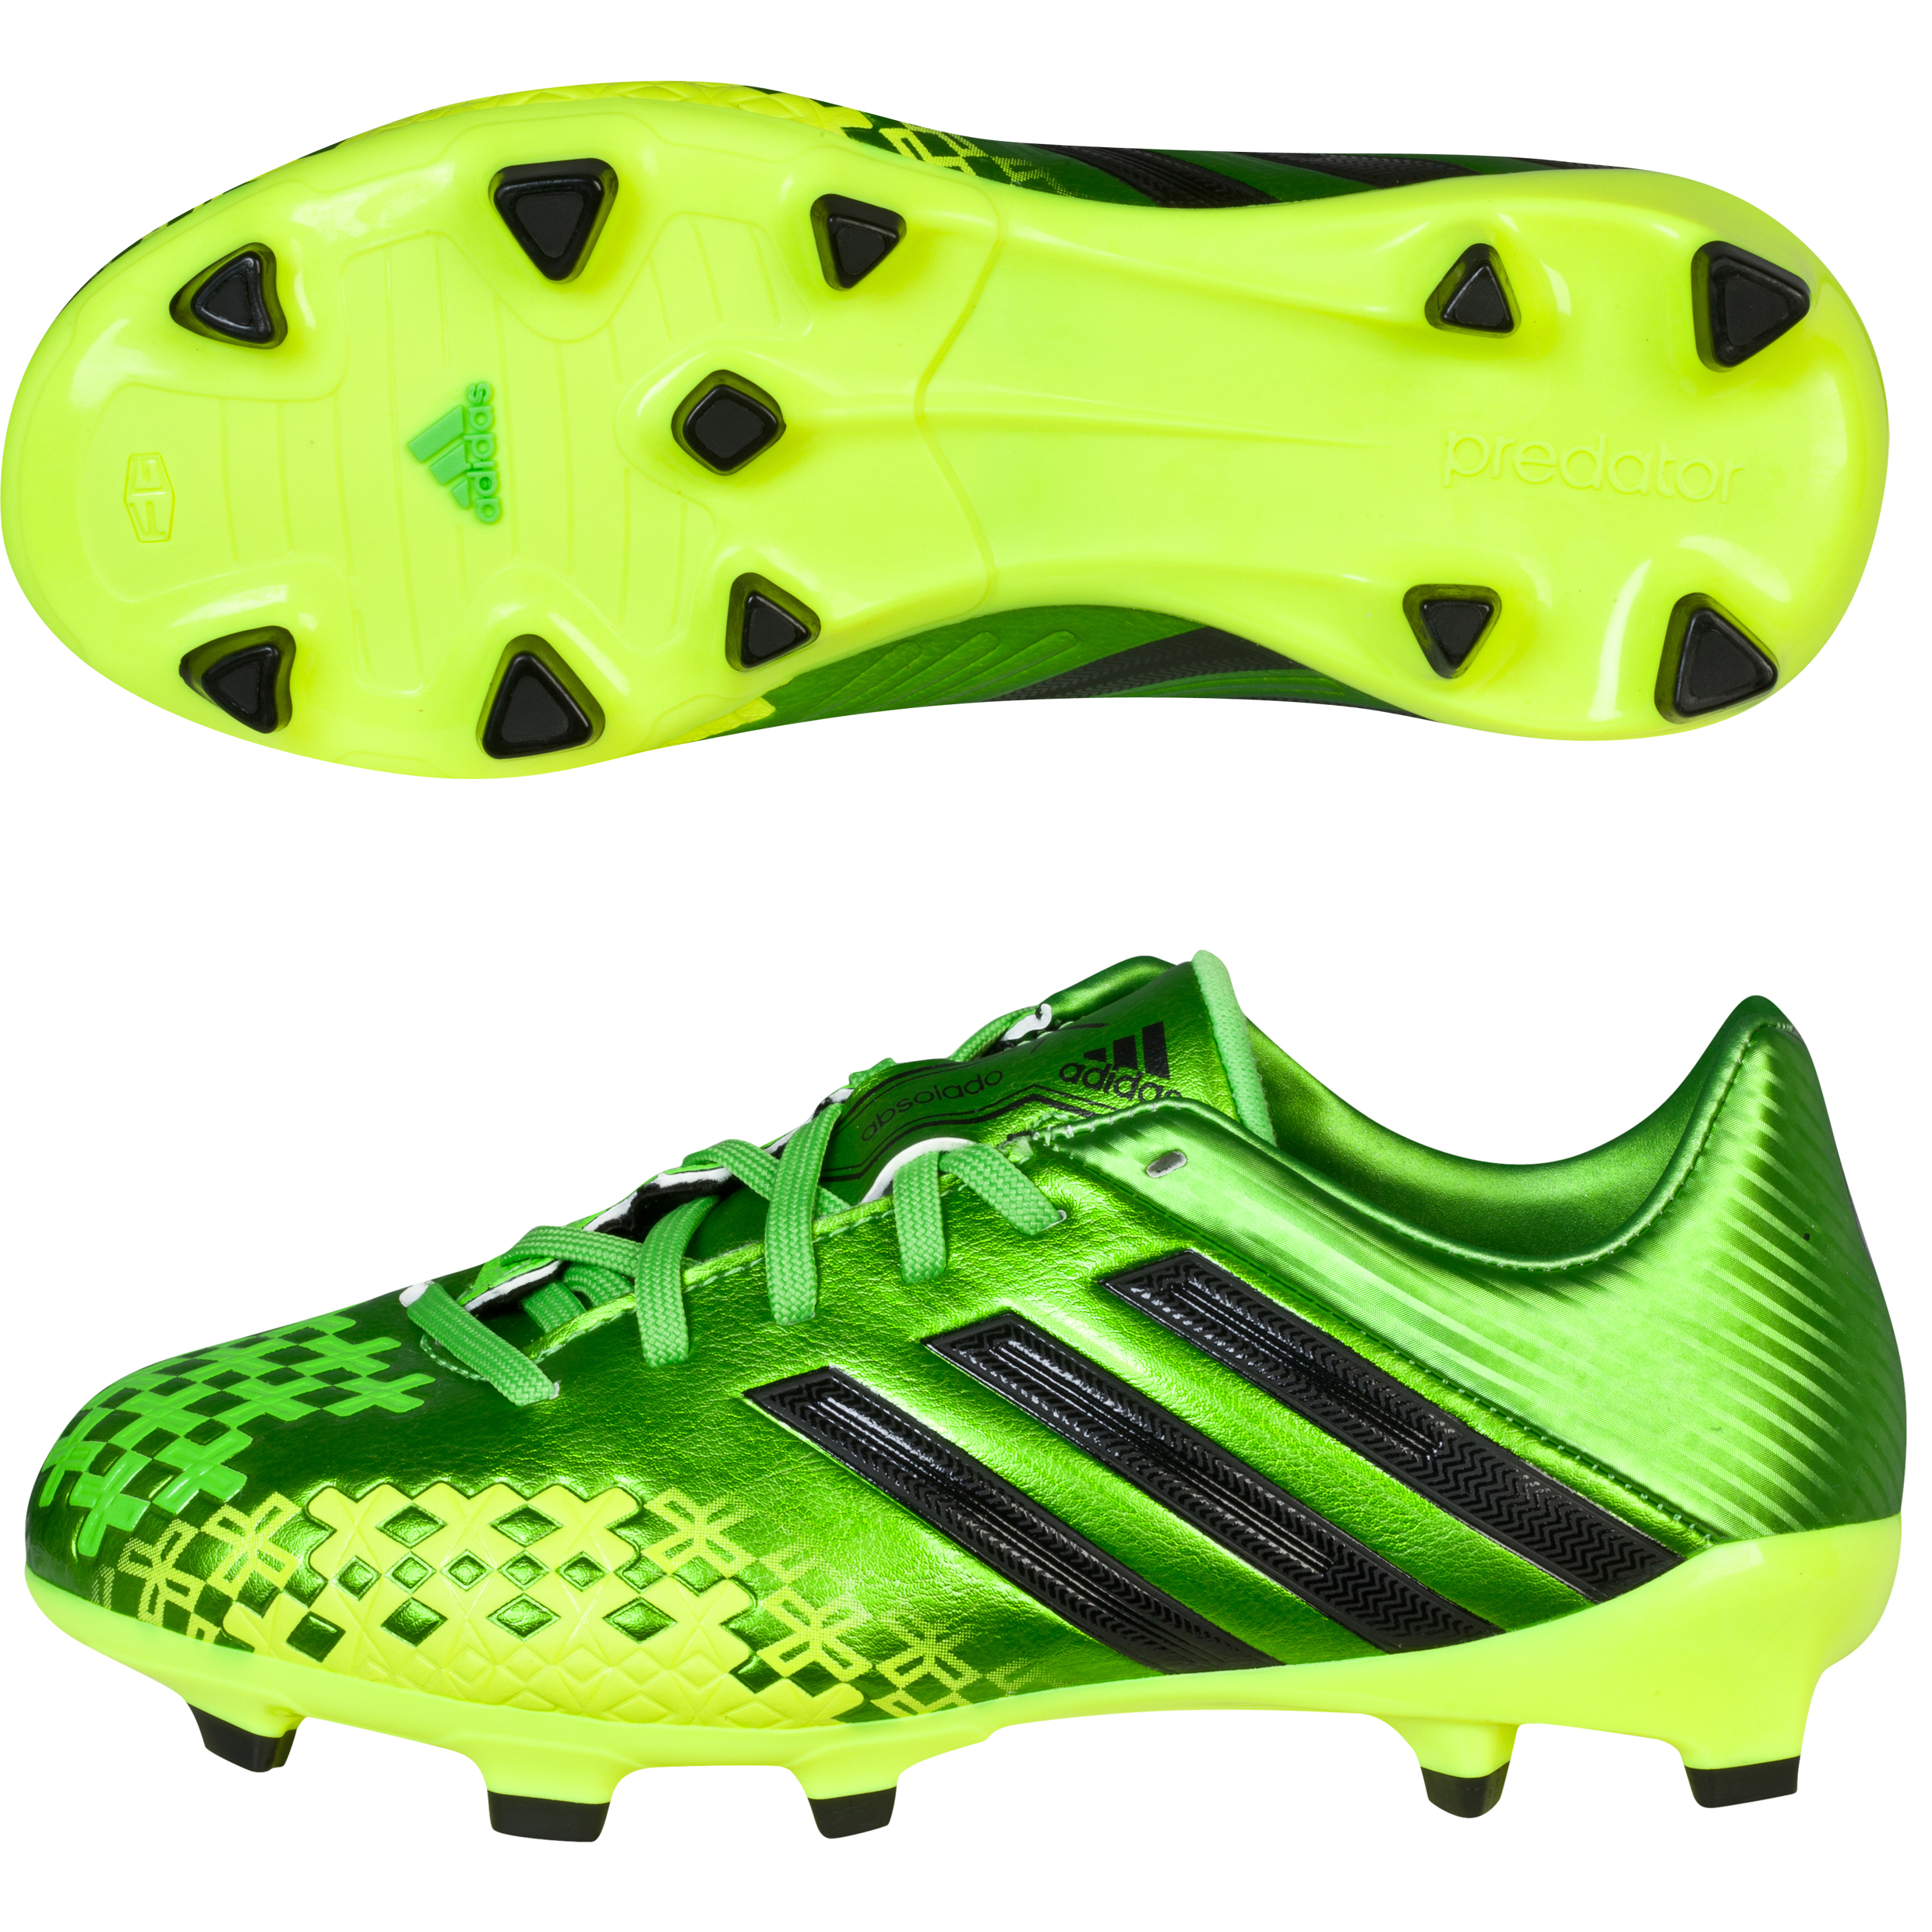 Adidas Predator Absolado LZ TRX Firm Ground Football Boots - Kids Green